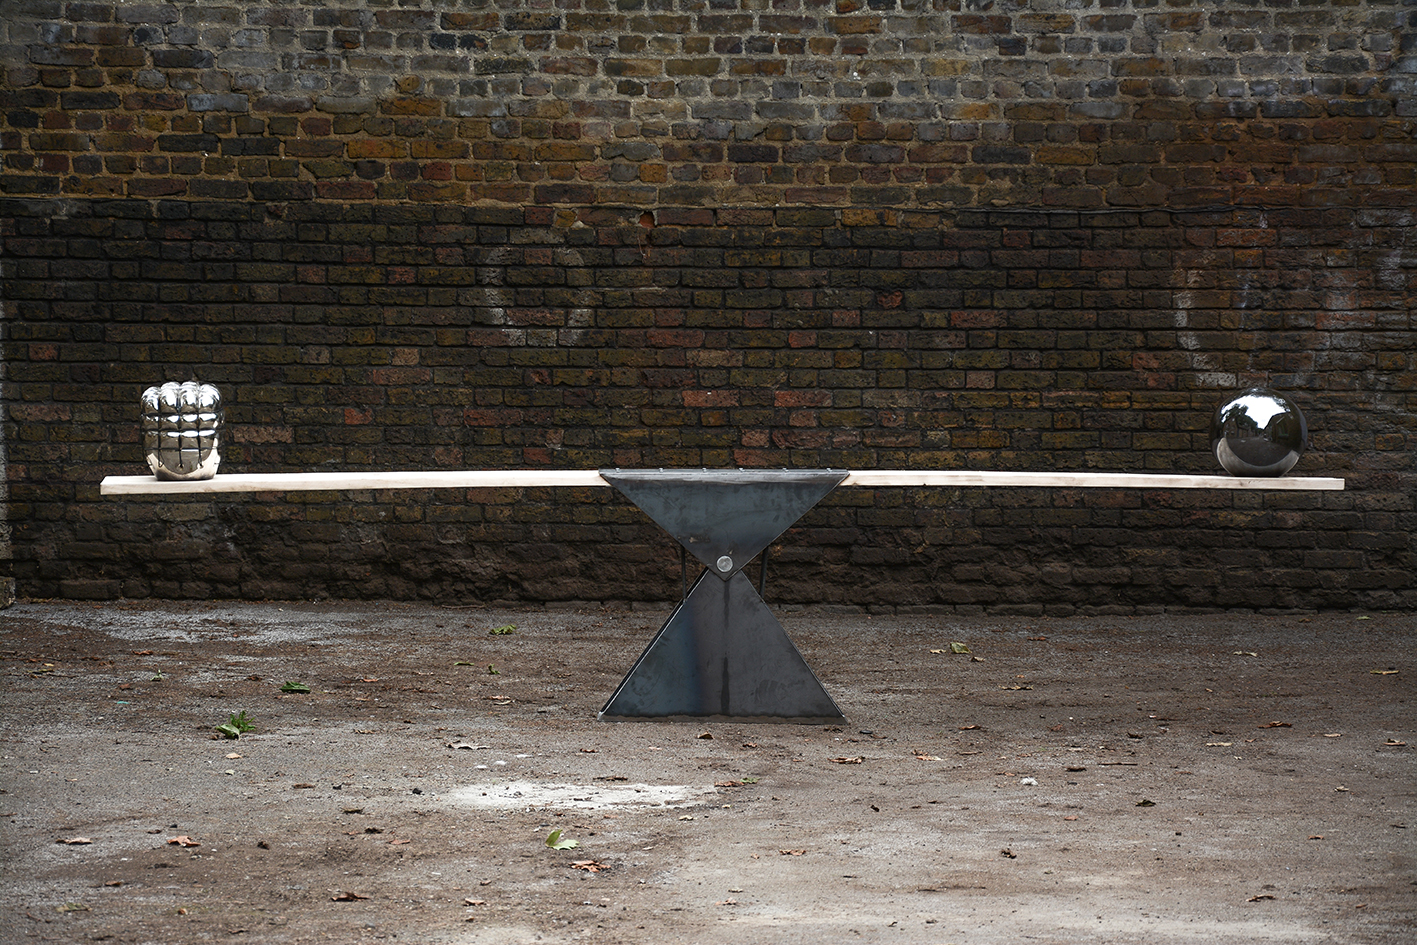 See Saw Seen, 2014, hand-blown glass, mirroring chemicals, lacquer, steel and wood, 400 x 80 x 30 cm rel=